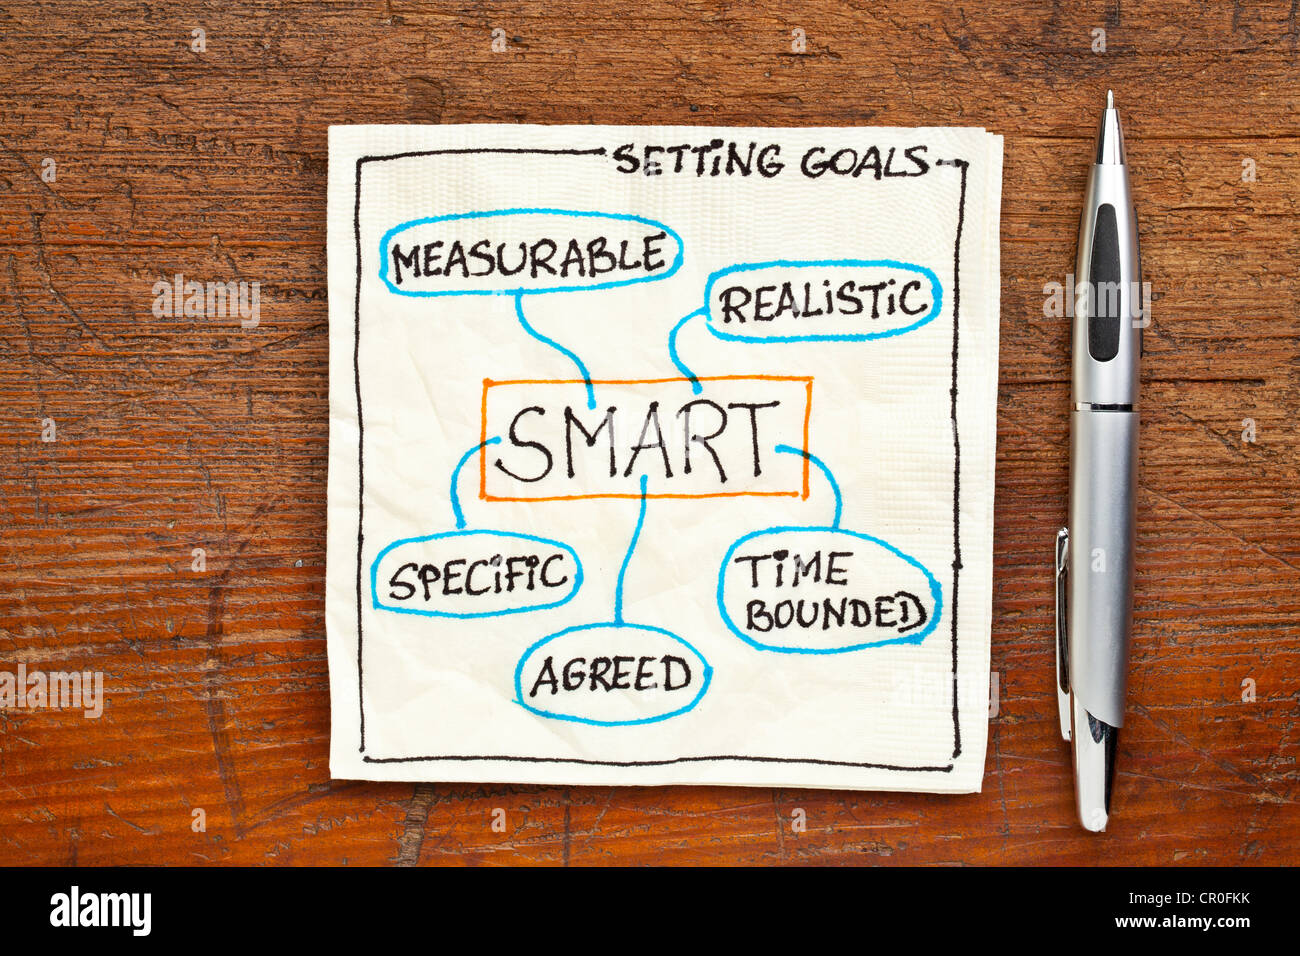 SMART ( specific, measurable, agreed, realistic, time-bound) goal setting concept - a napkin doodle on a grunge - Stock Image